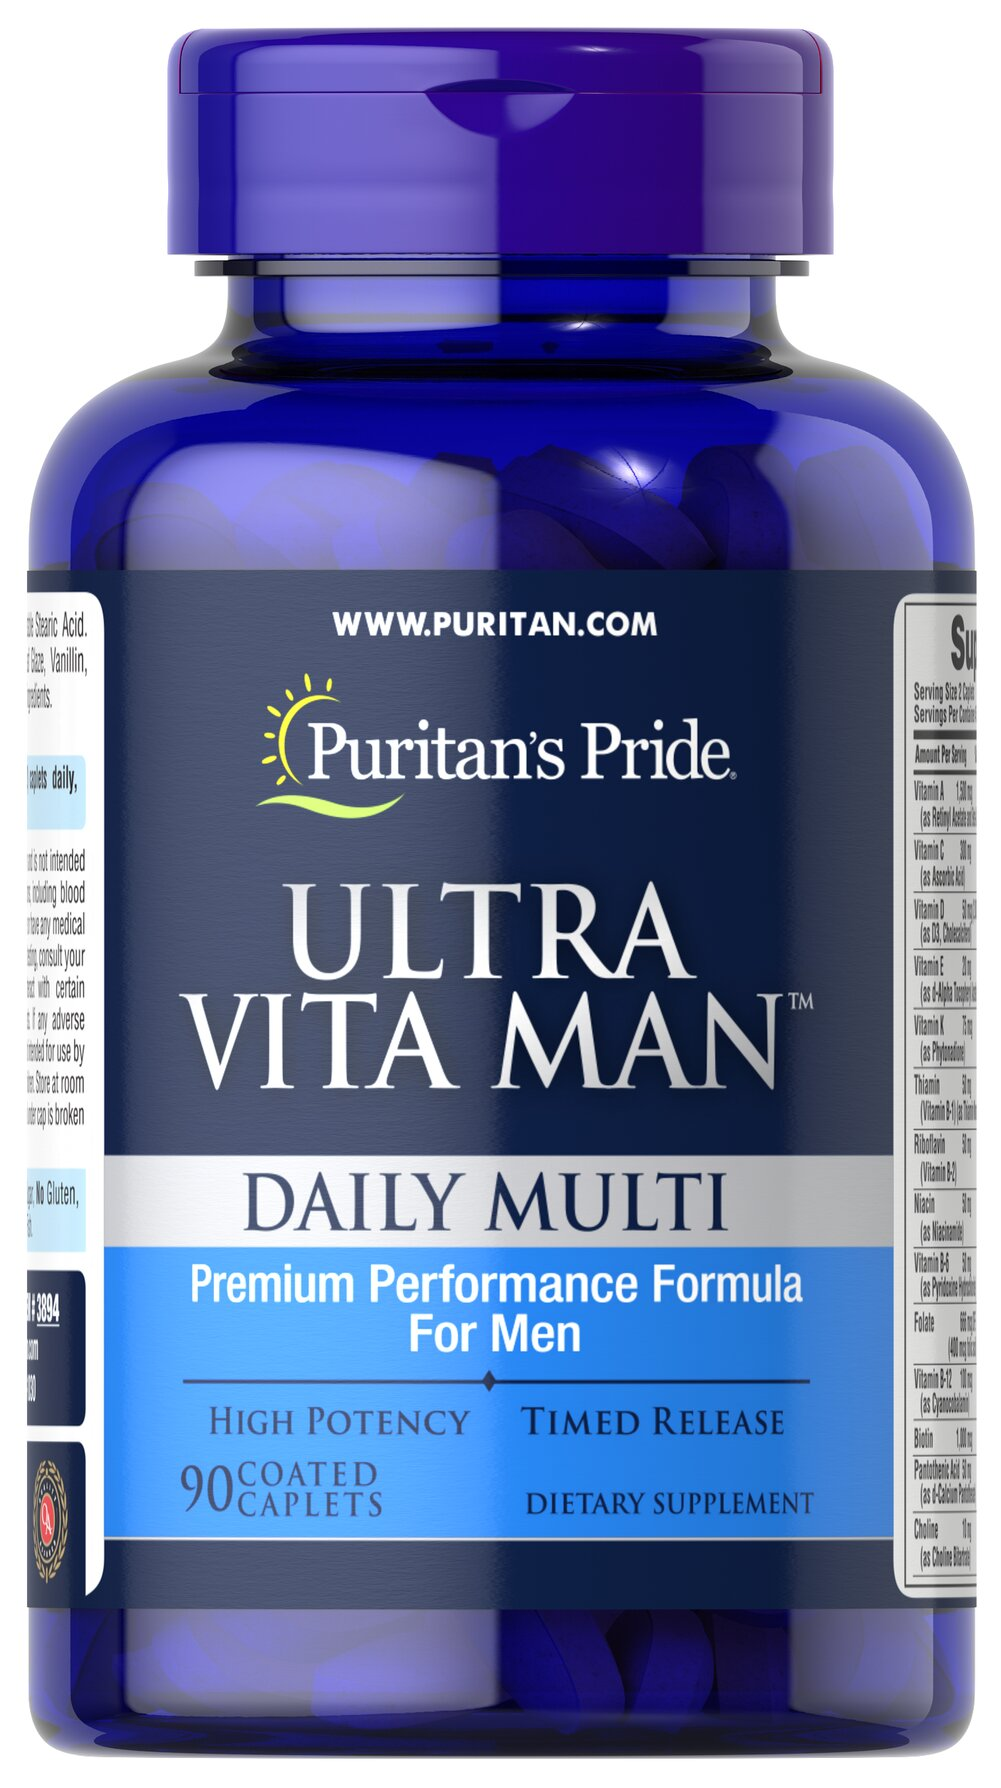 Ultra Vita Man™ Time Release <p>This time release multivitamin  delivers vitamins and minerals shown to be beneficial to men's overall wellness. From antioxidant and immune support to cardiovascular health, Ultra Vita Man is ideal for today's on-the-go men!**</p> 90 Caplets  $28.99